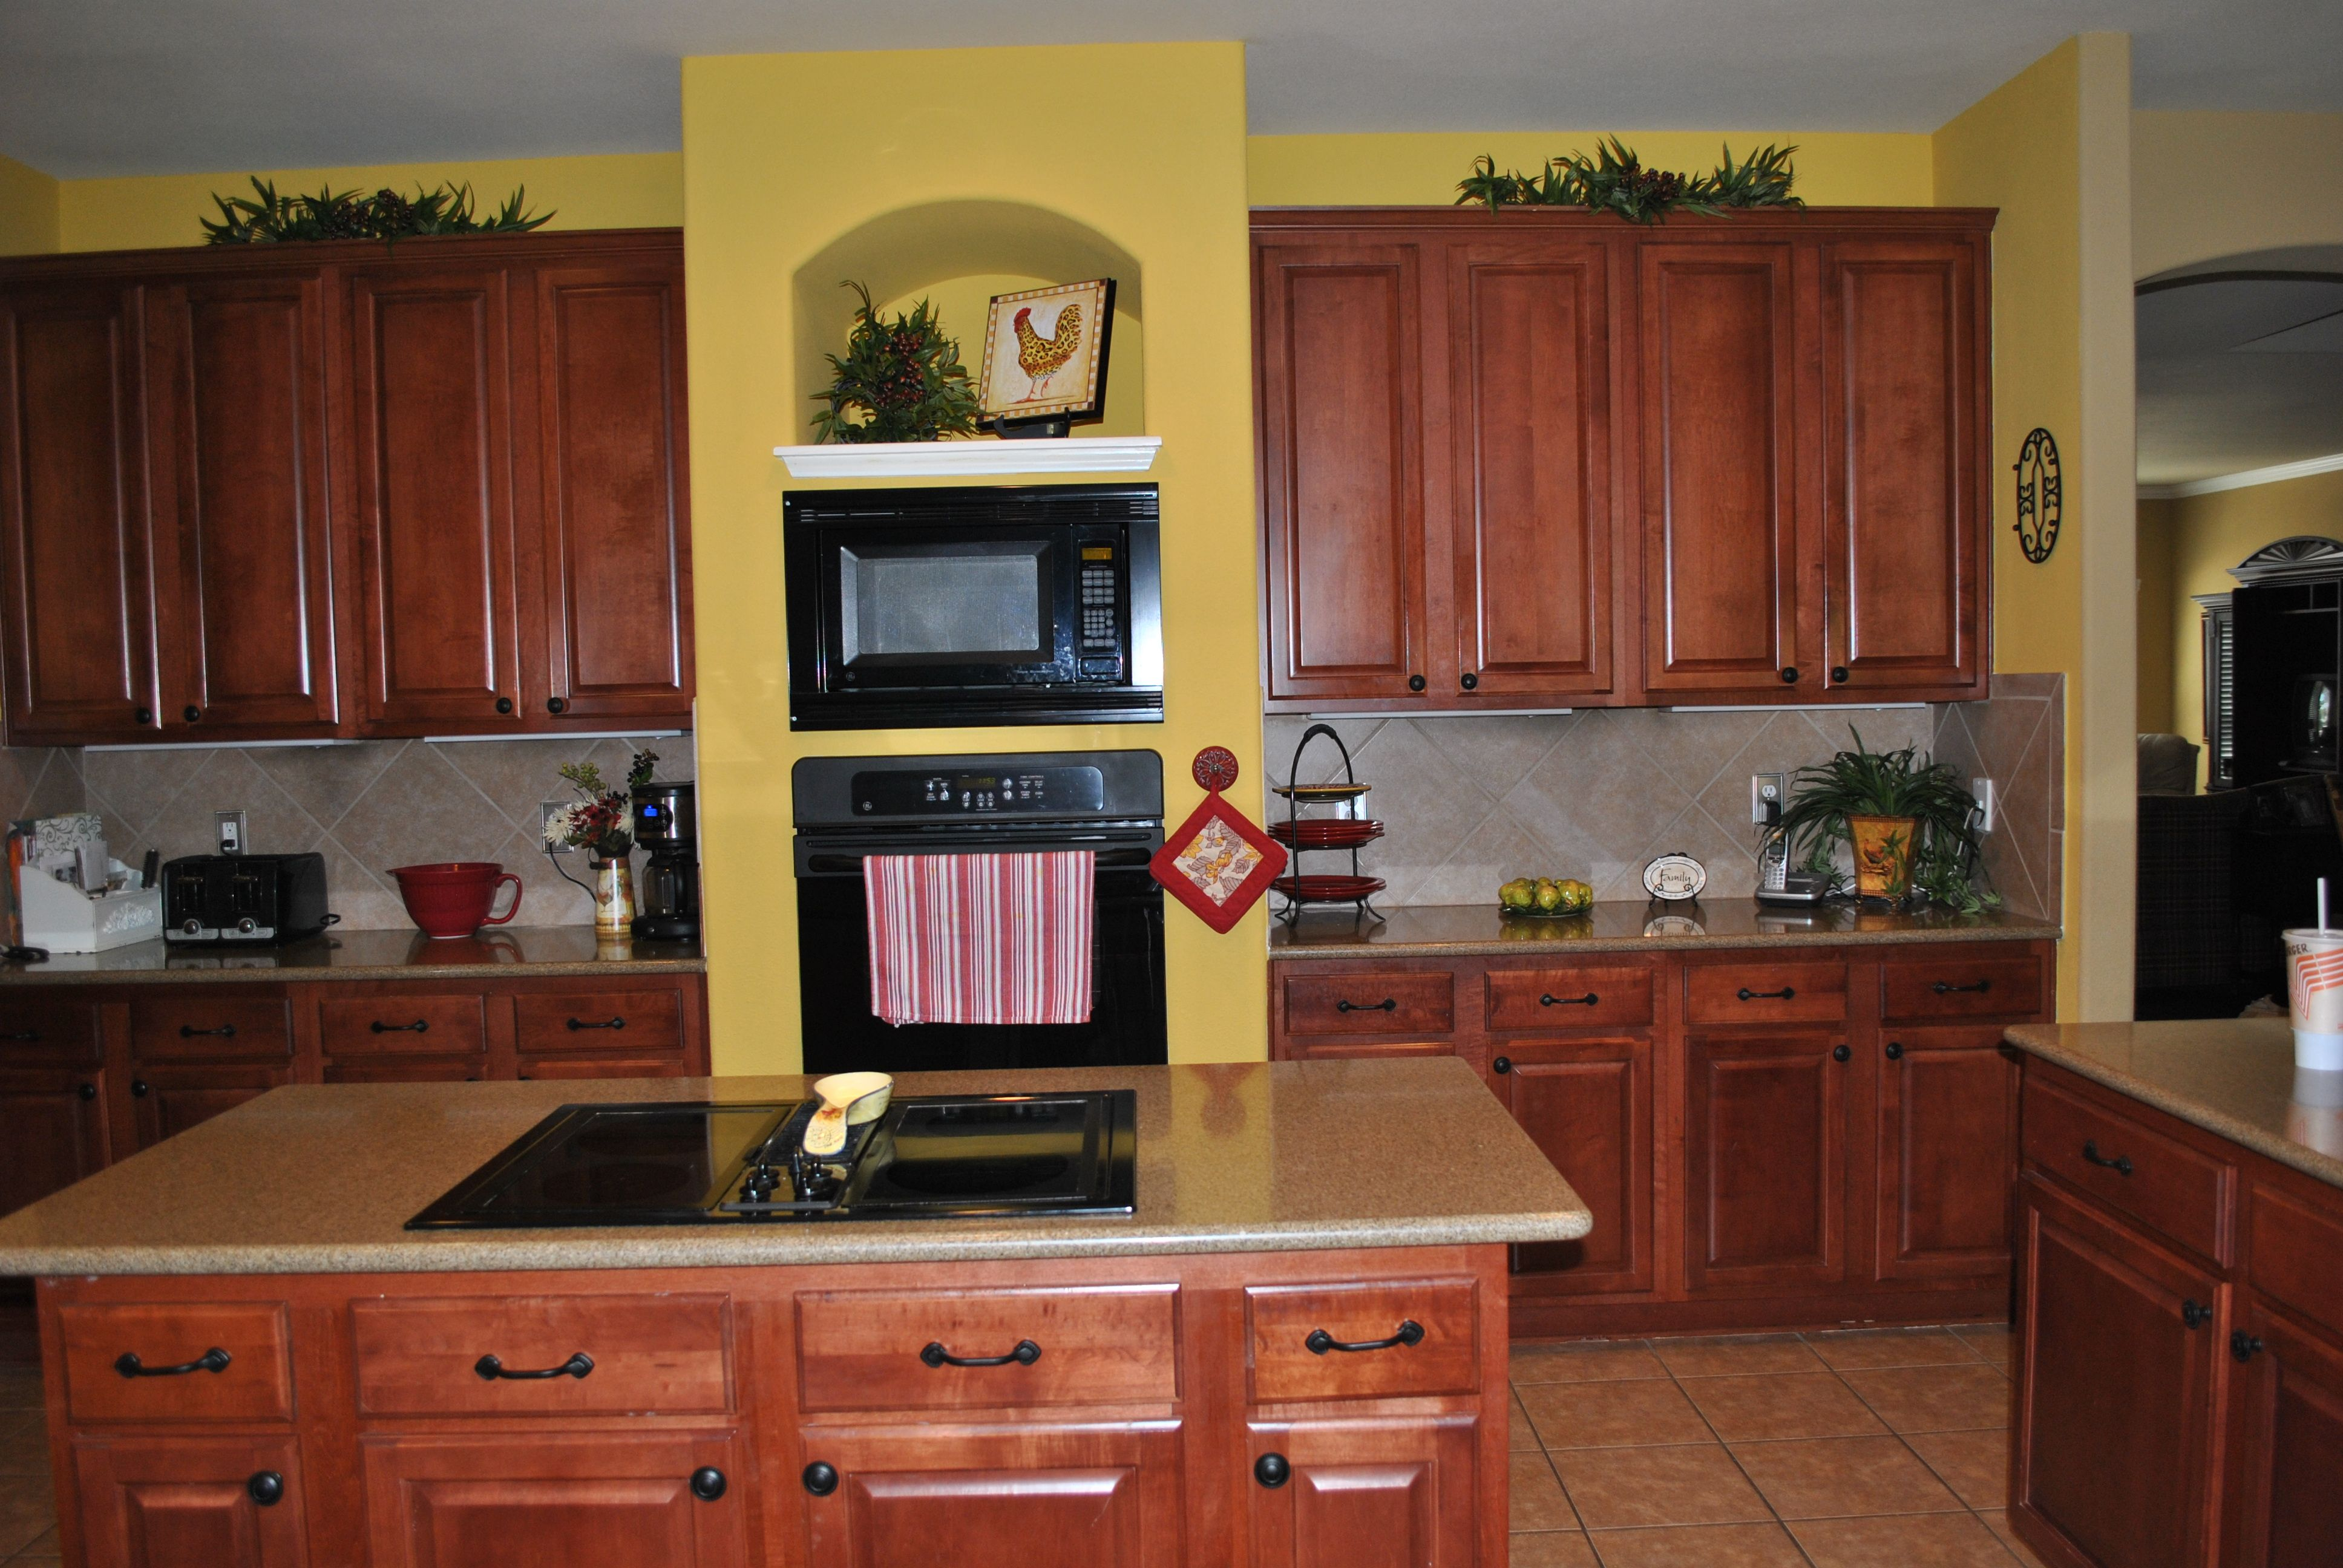 Ordinaire Yellow Kitchen Walls With Dark Cabinets. I Donu0027t Really Like The Black  Appliances